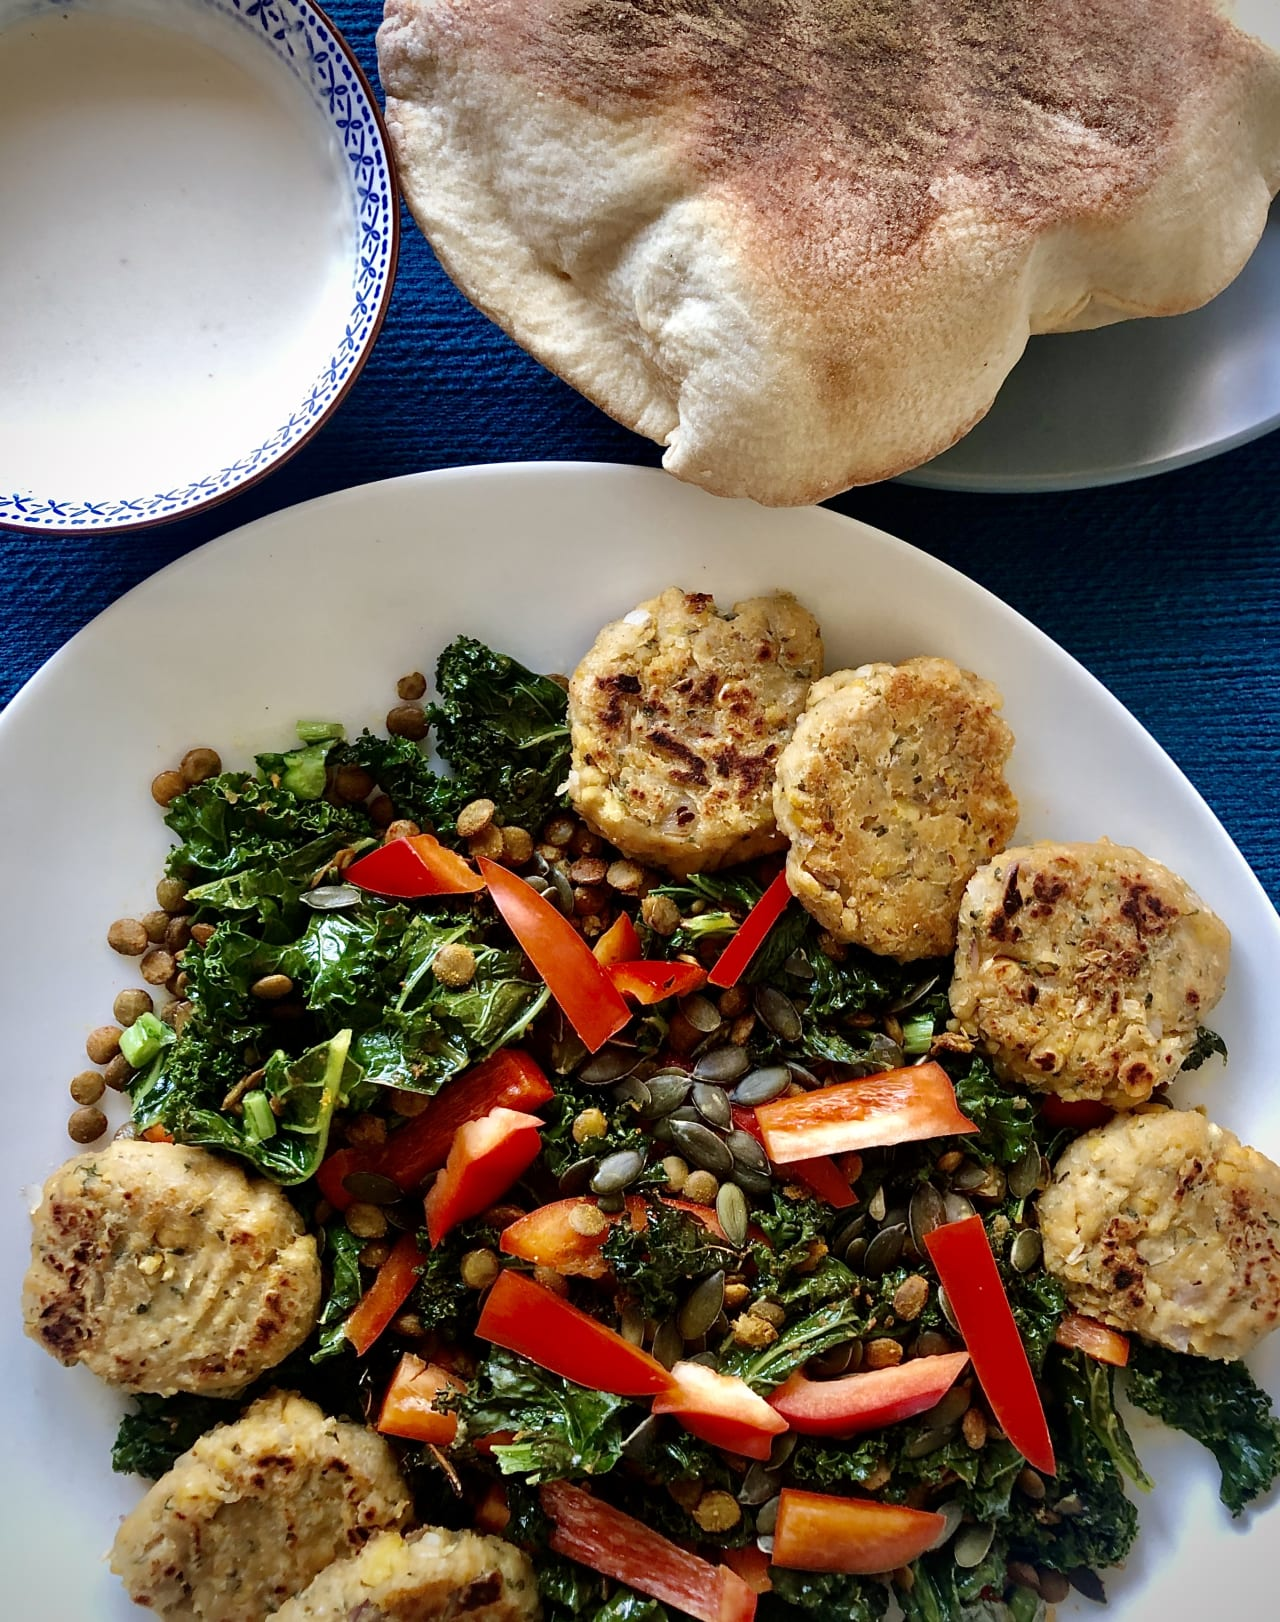 Chickpea Patty, Baked Kale and Spiced Lentil Salad with a Tahini Dressing